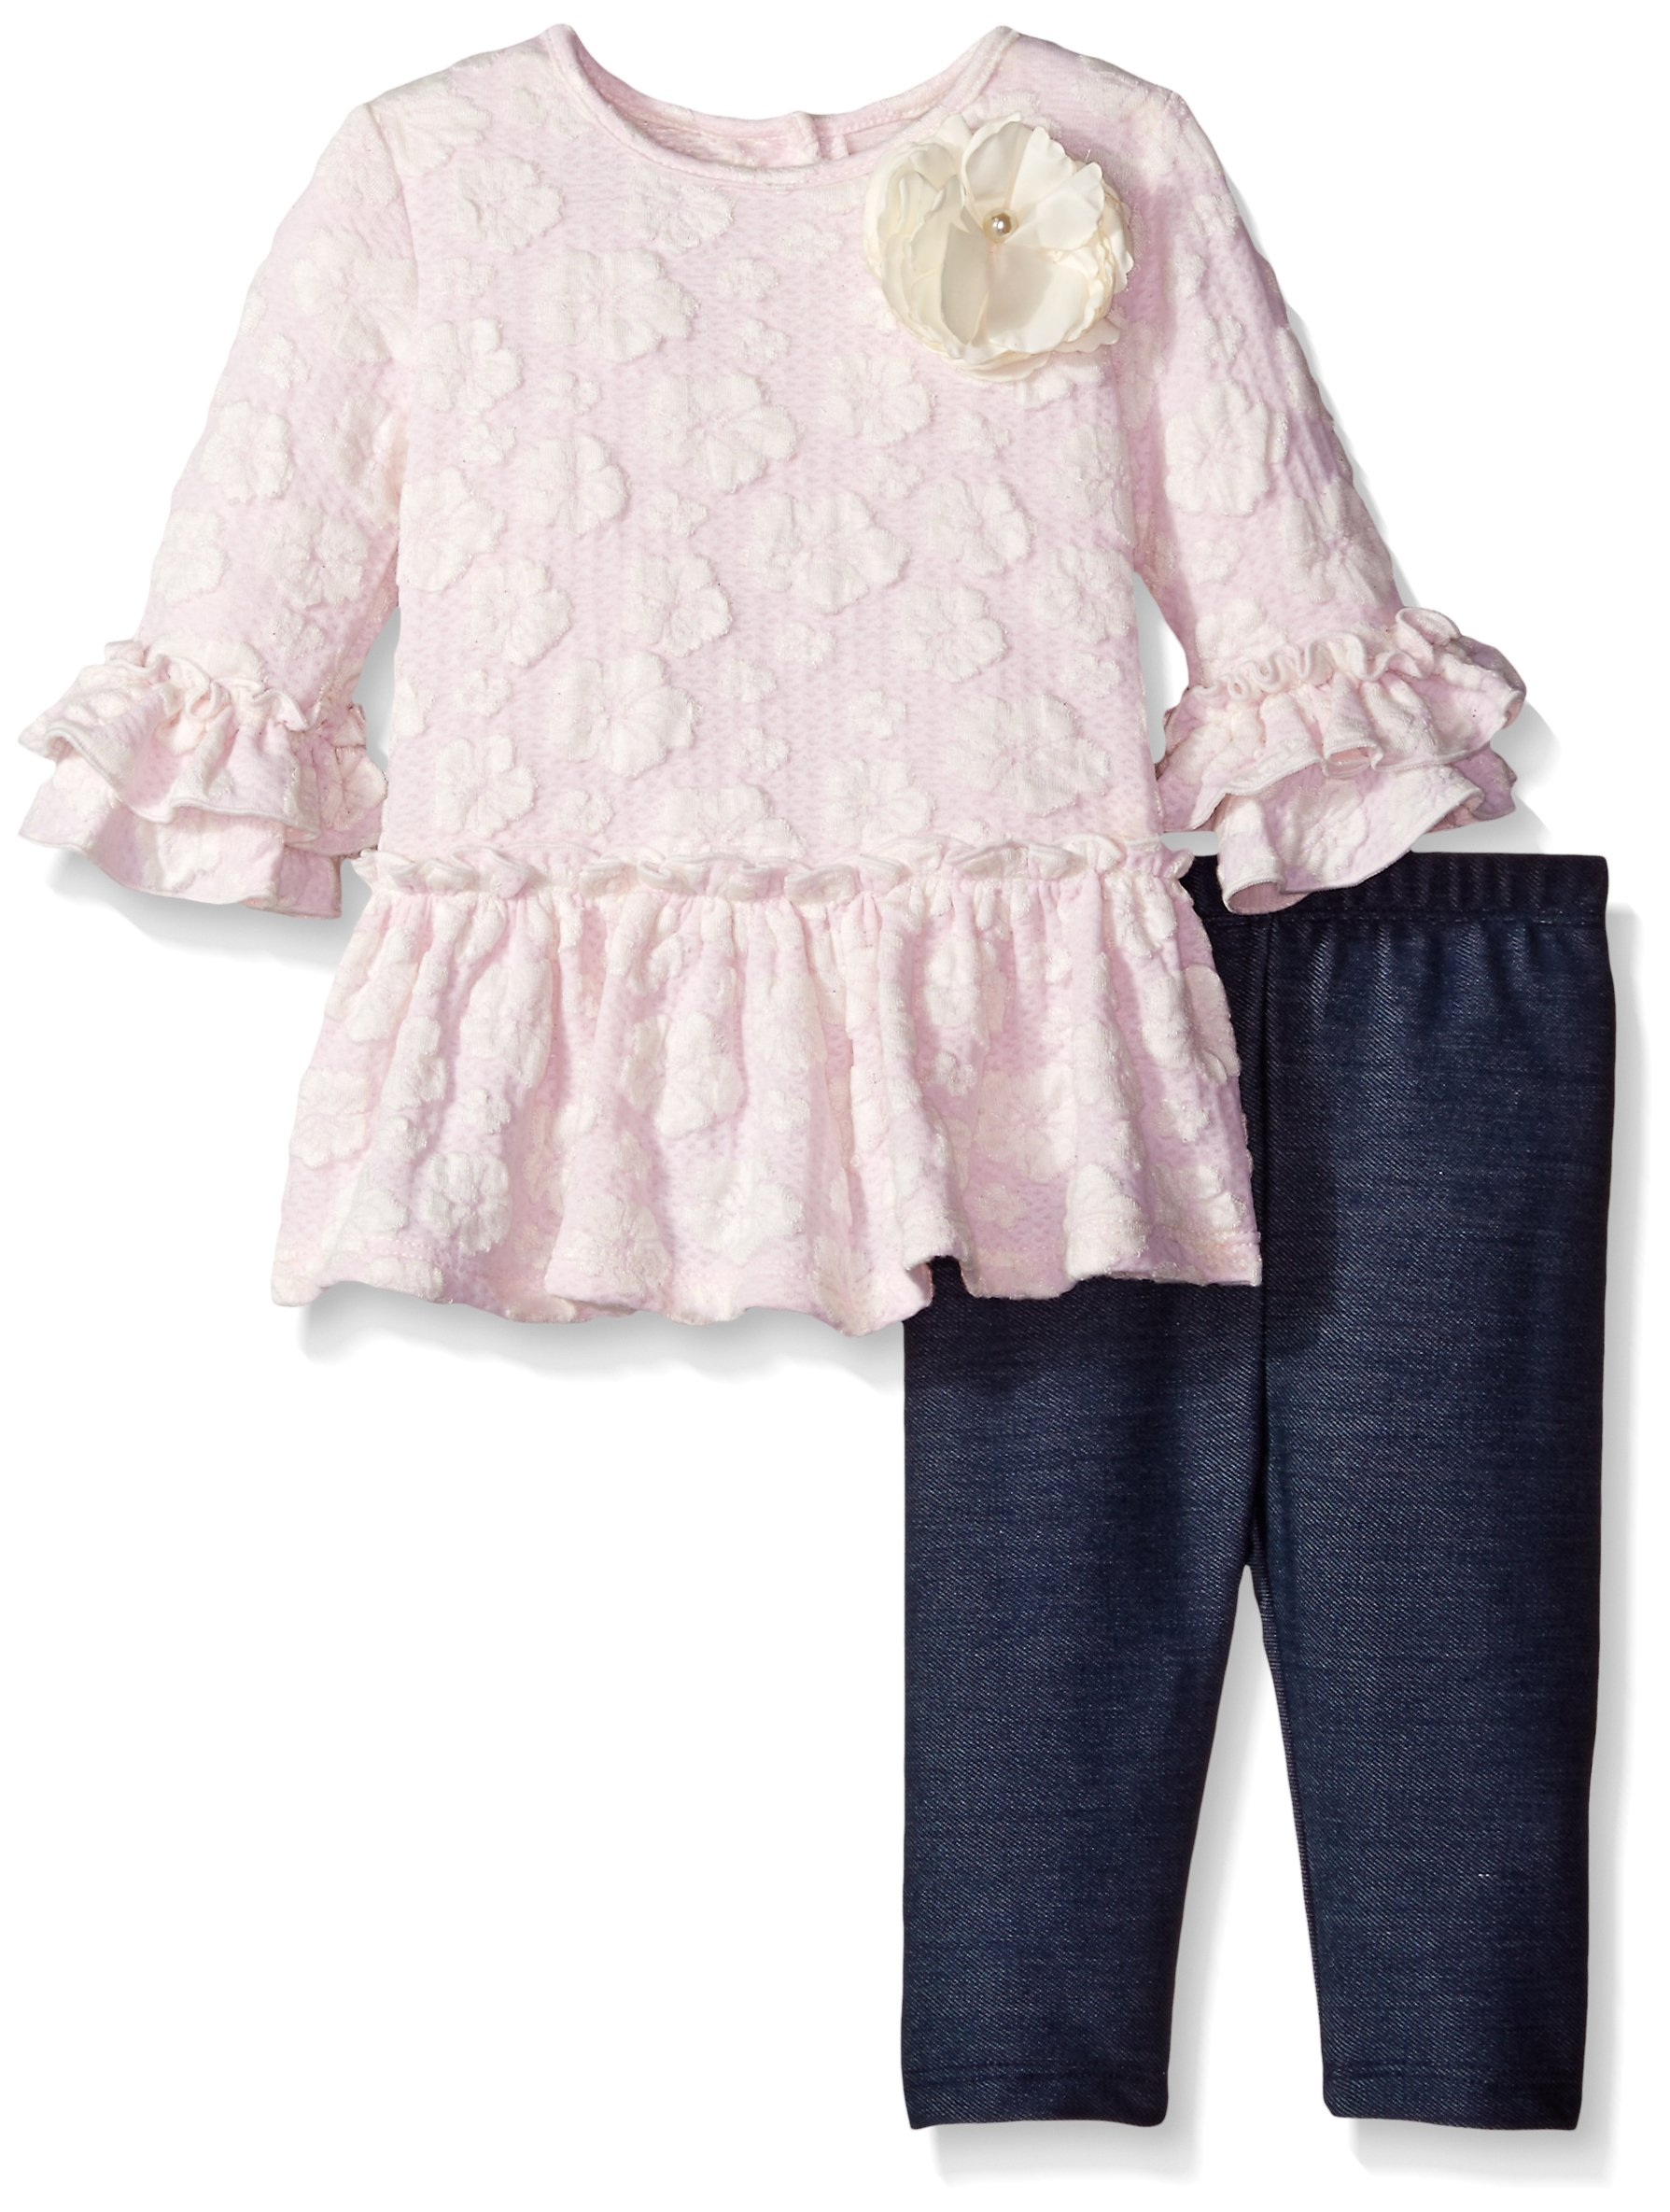 Pippa & Julie Baby Girls' Lace Knit Play Set, Pink, 24 Months